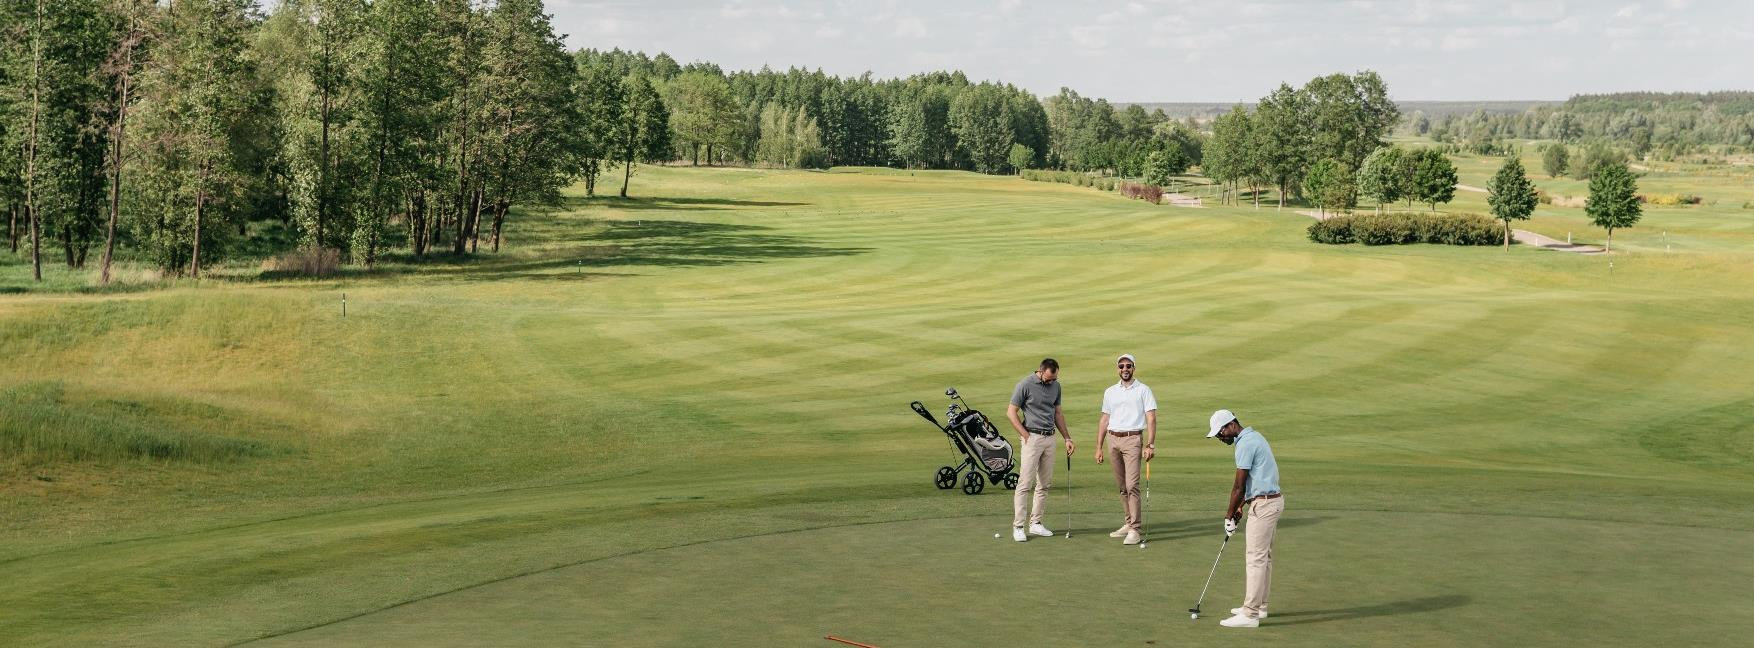 Picture of three golf players on a green playing golf